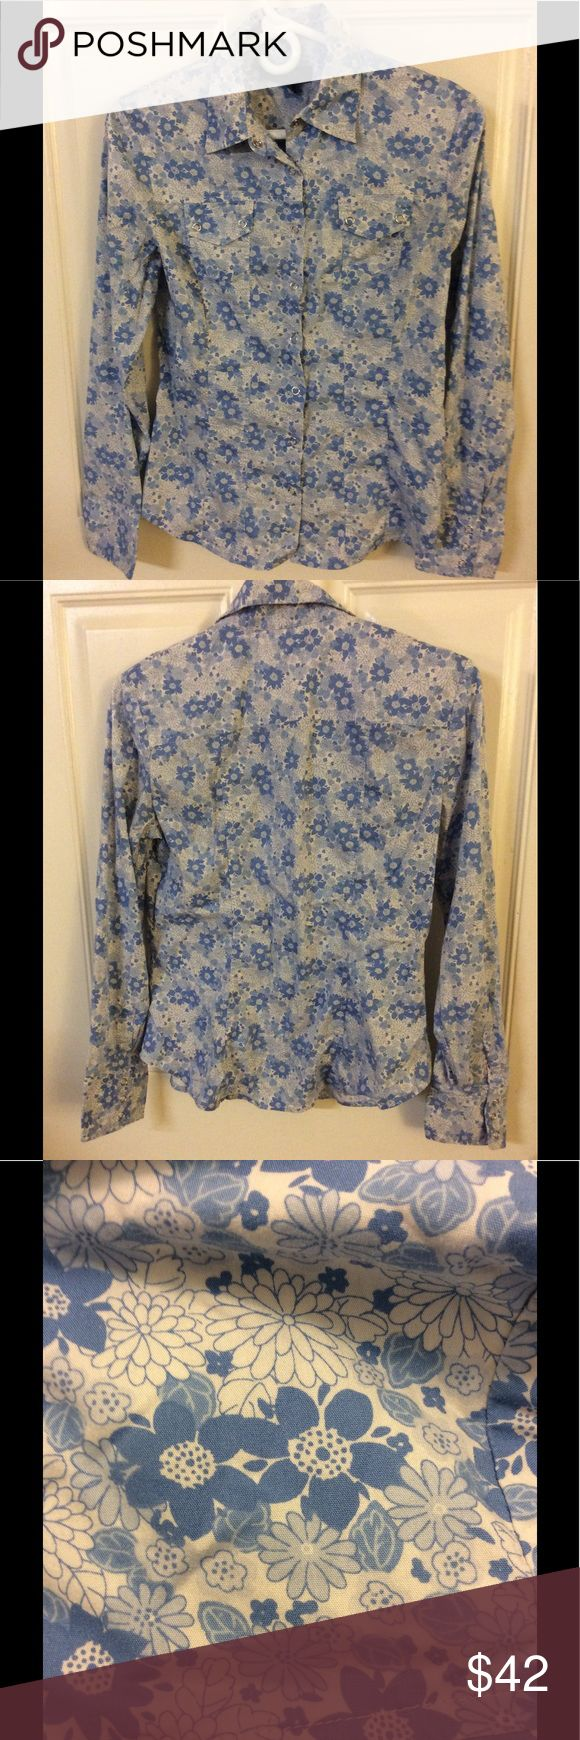 Express Flower Print Blouse Brand - Express - Colors - Blue & White - Size - 9/10 Express Tops Blouses